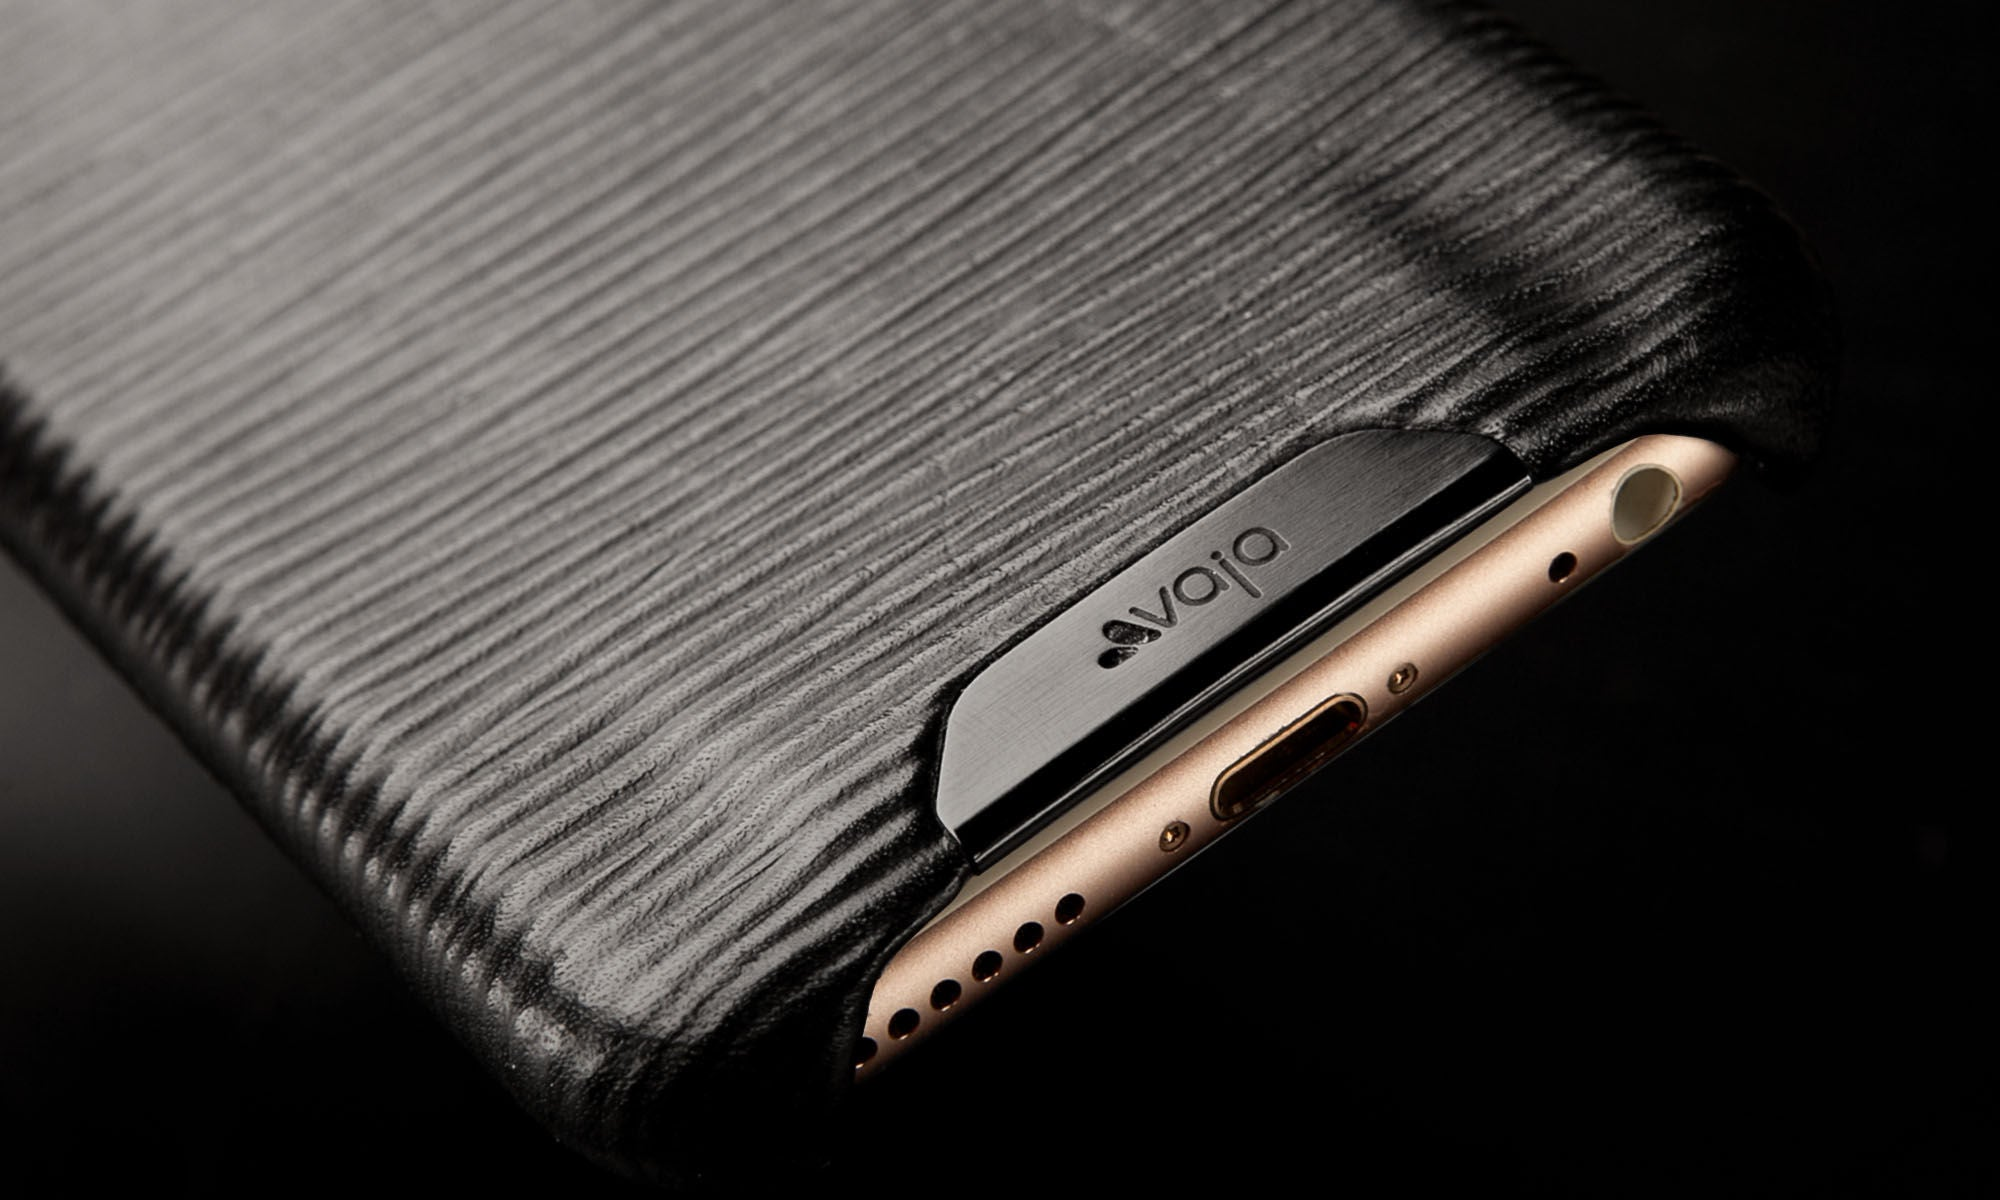 iPhone 6/6s Grip Legno Nero Premium Leather Case